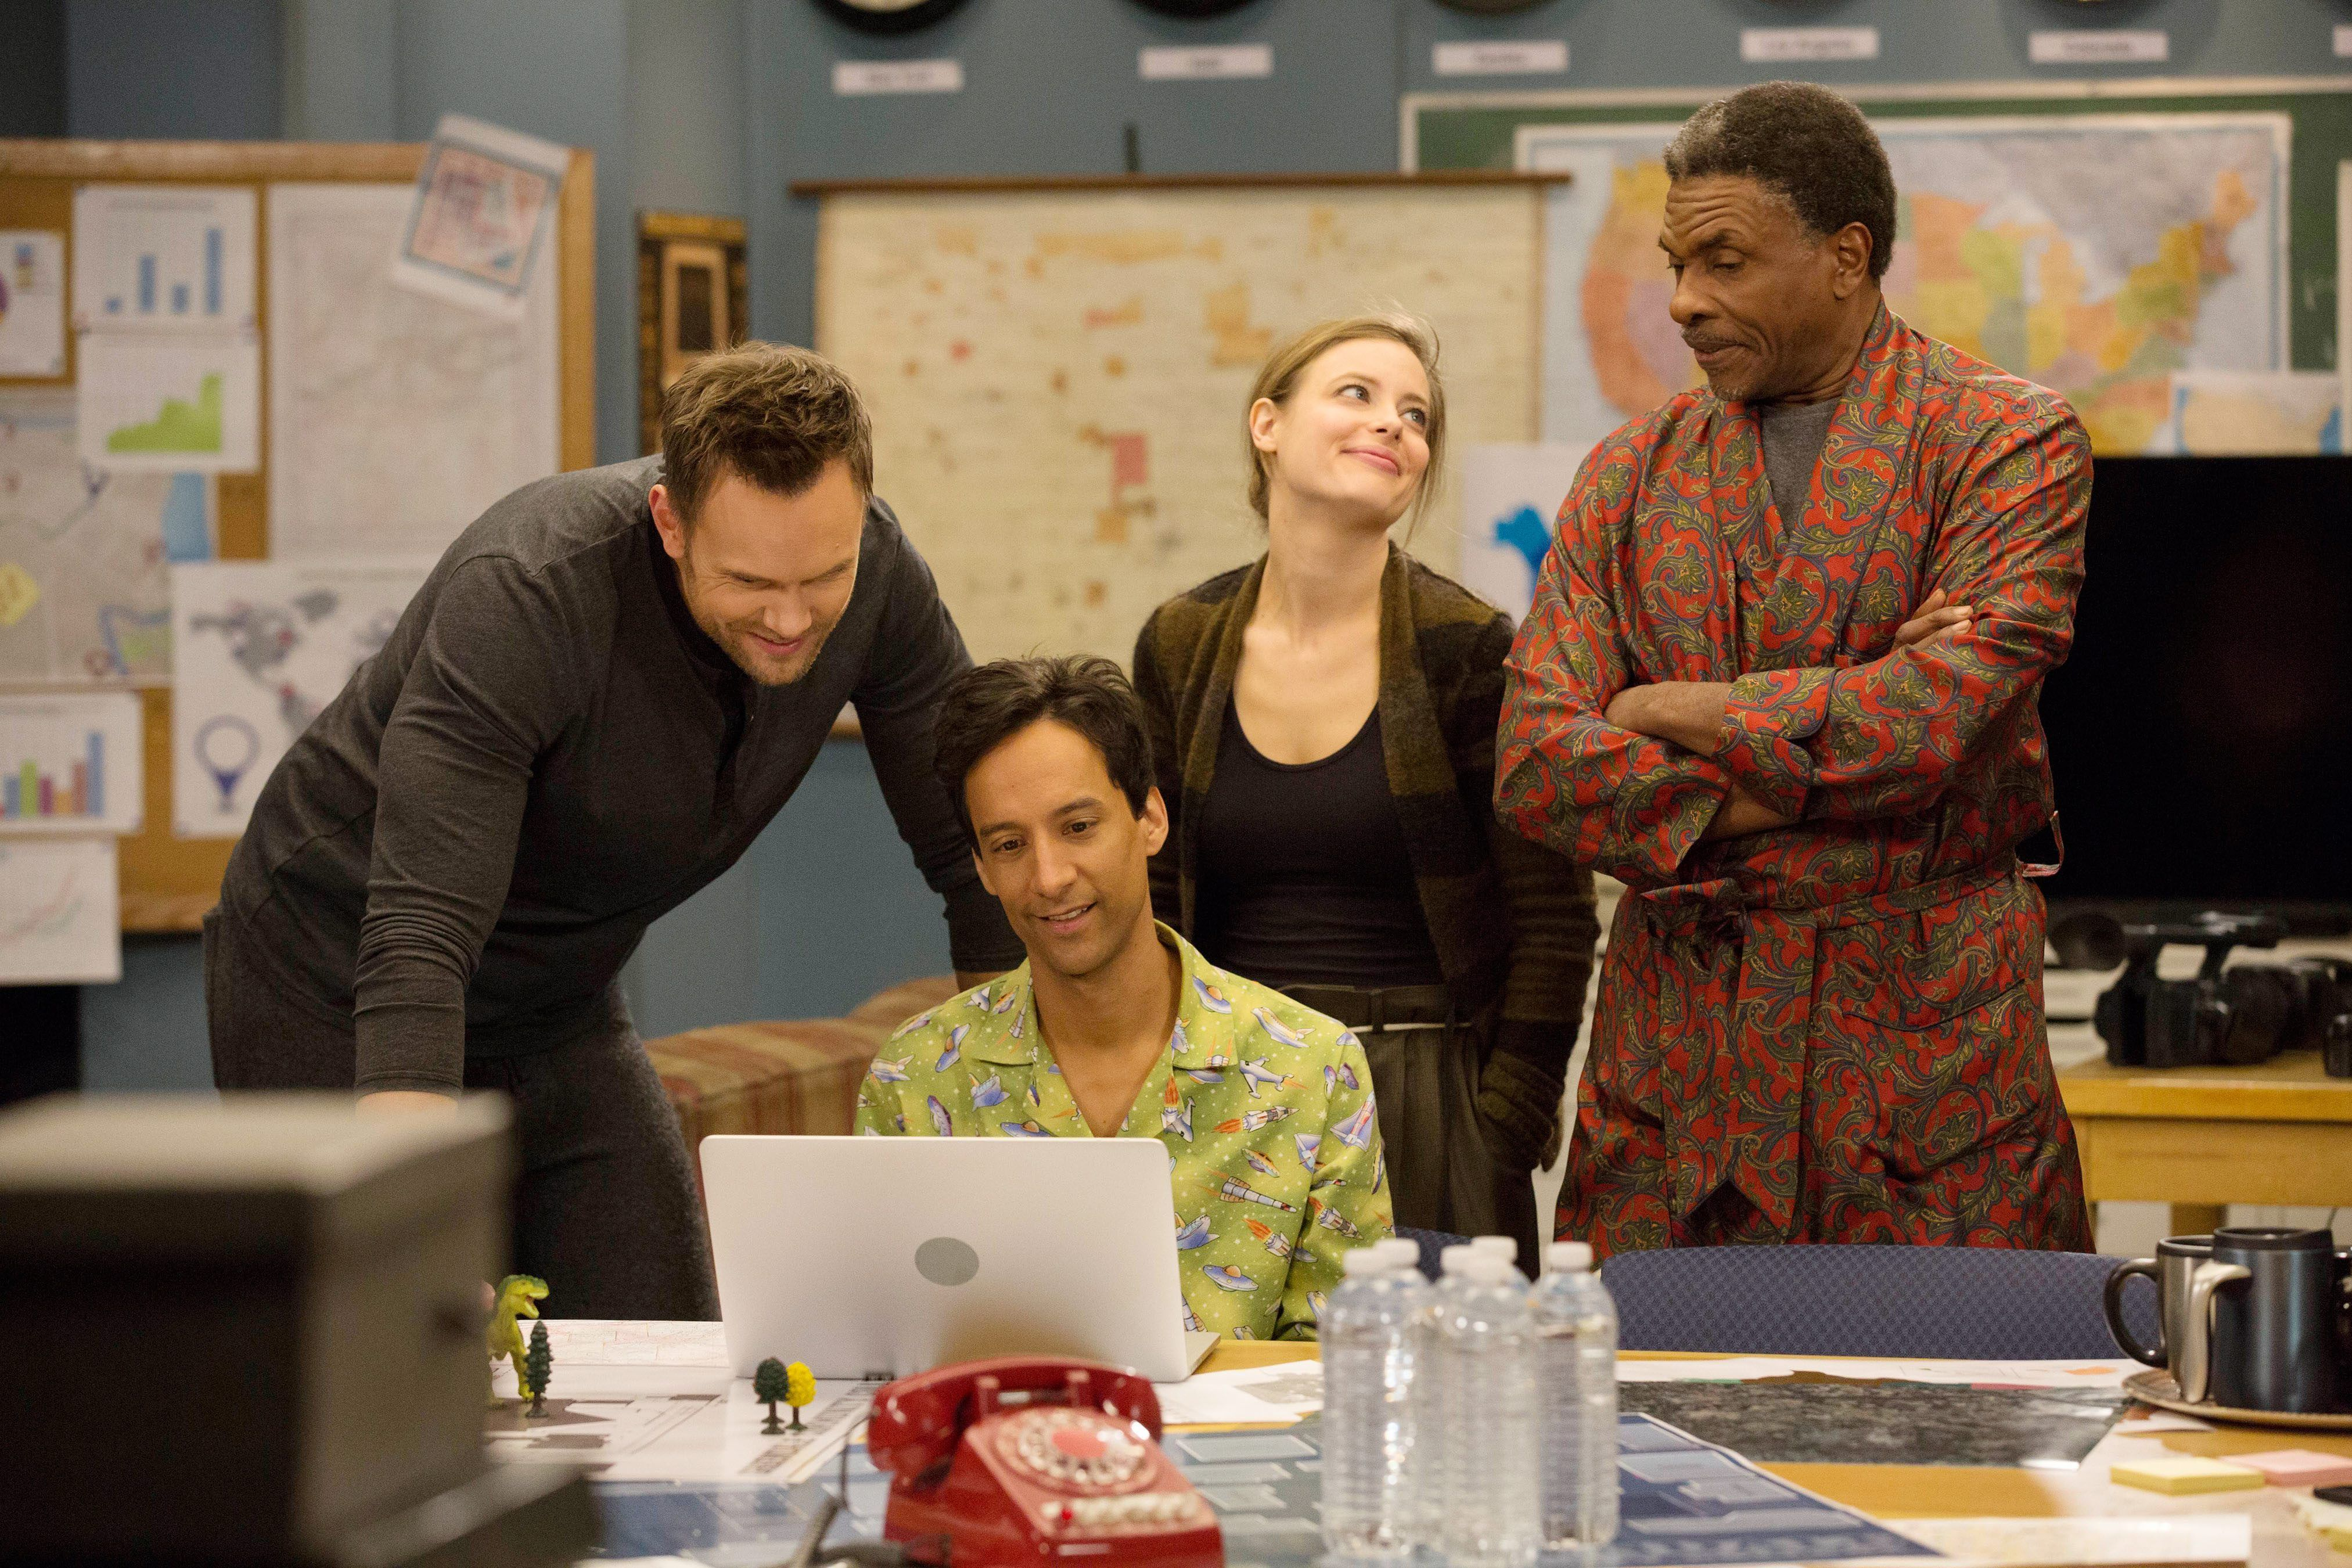 12 Things You Probably Didn't Know About 'Community' - Fame10